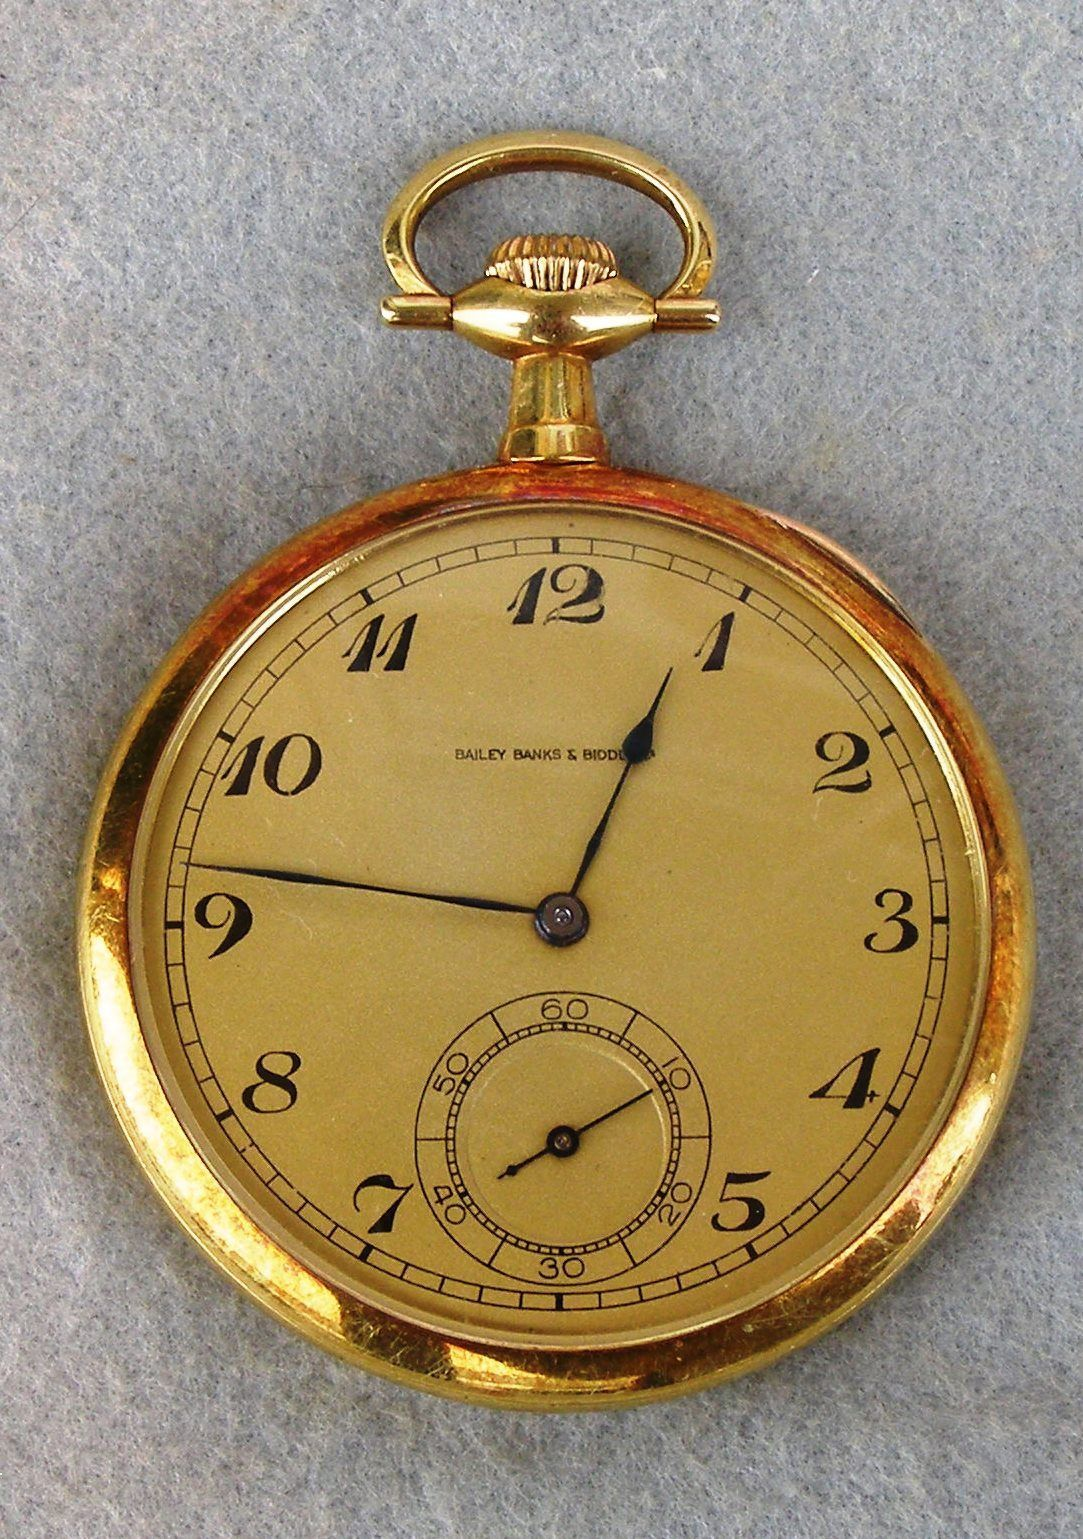 dac684b7a1e 18K Gold Pocket Watch Presented to J J McDermott for Winning The 1911 US  Open